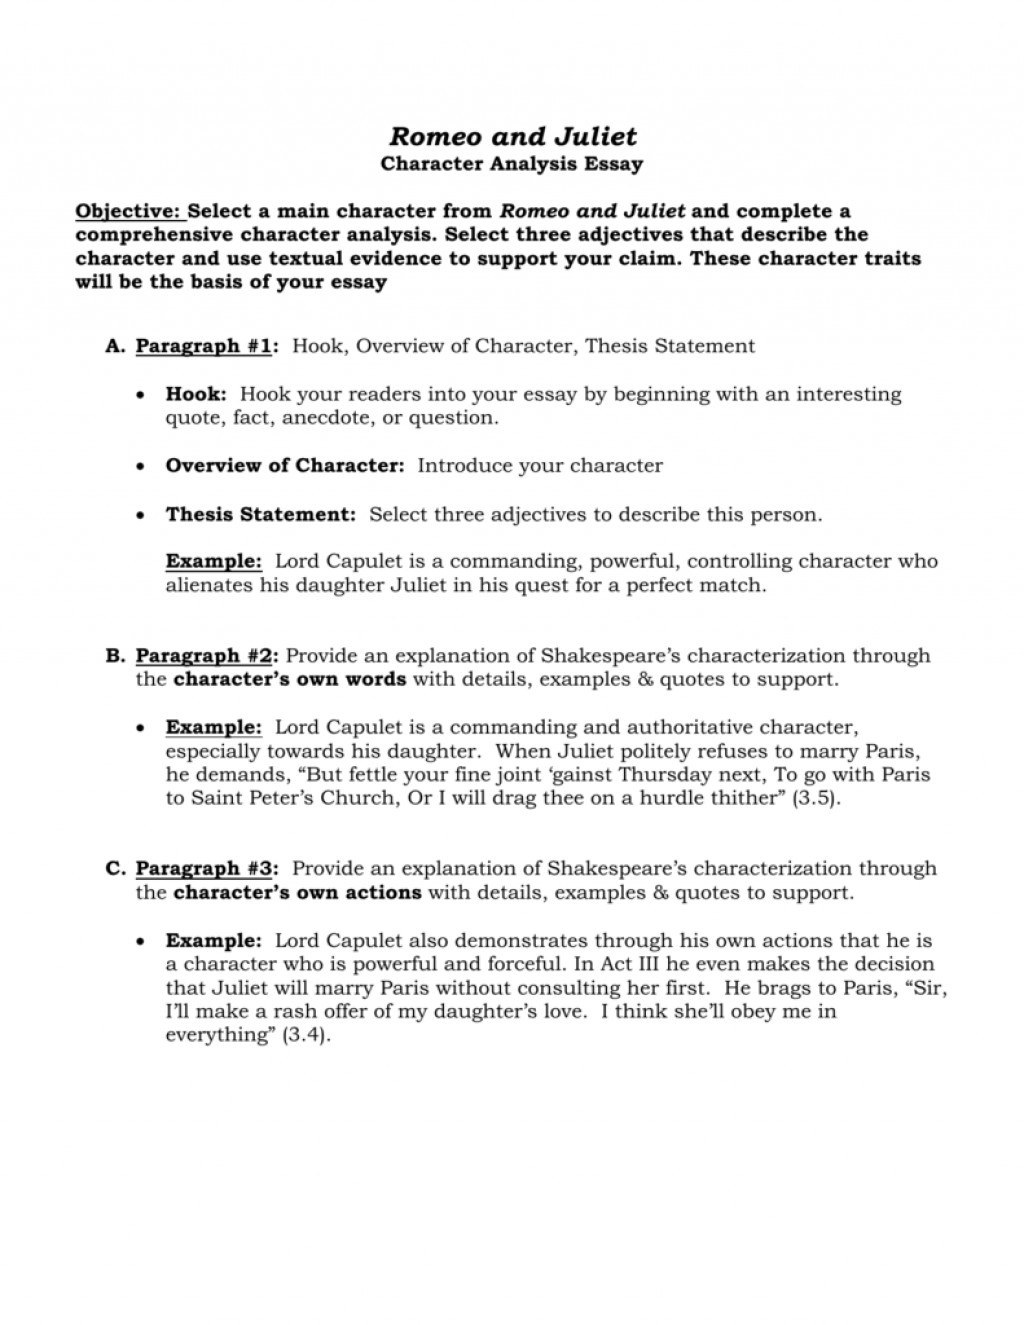 018 Romeo Character Traits Essay Research Paper Academic Writing Service Characterization Analysis Example 007291824 1 Comparing Characters Excellent On Characteristics Of A Good Student Rose For Emily Large